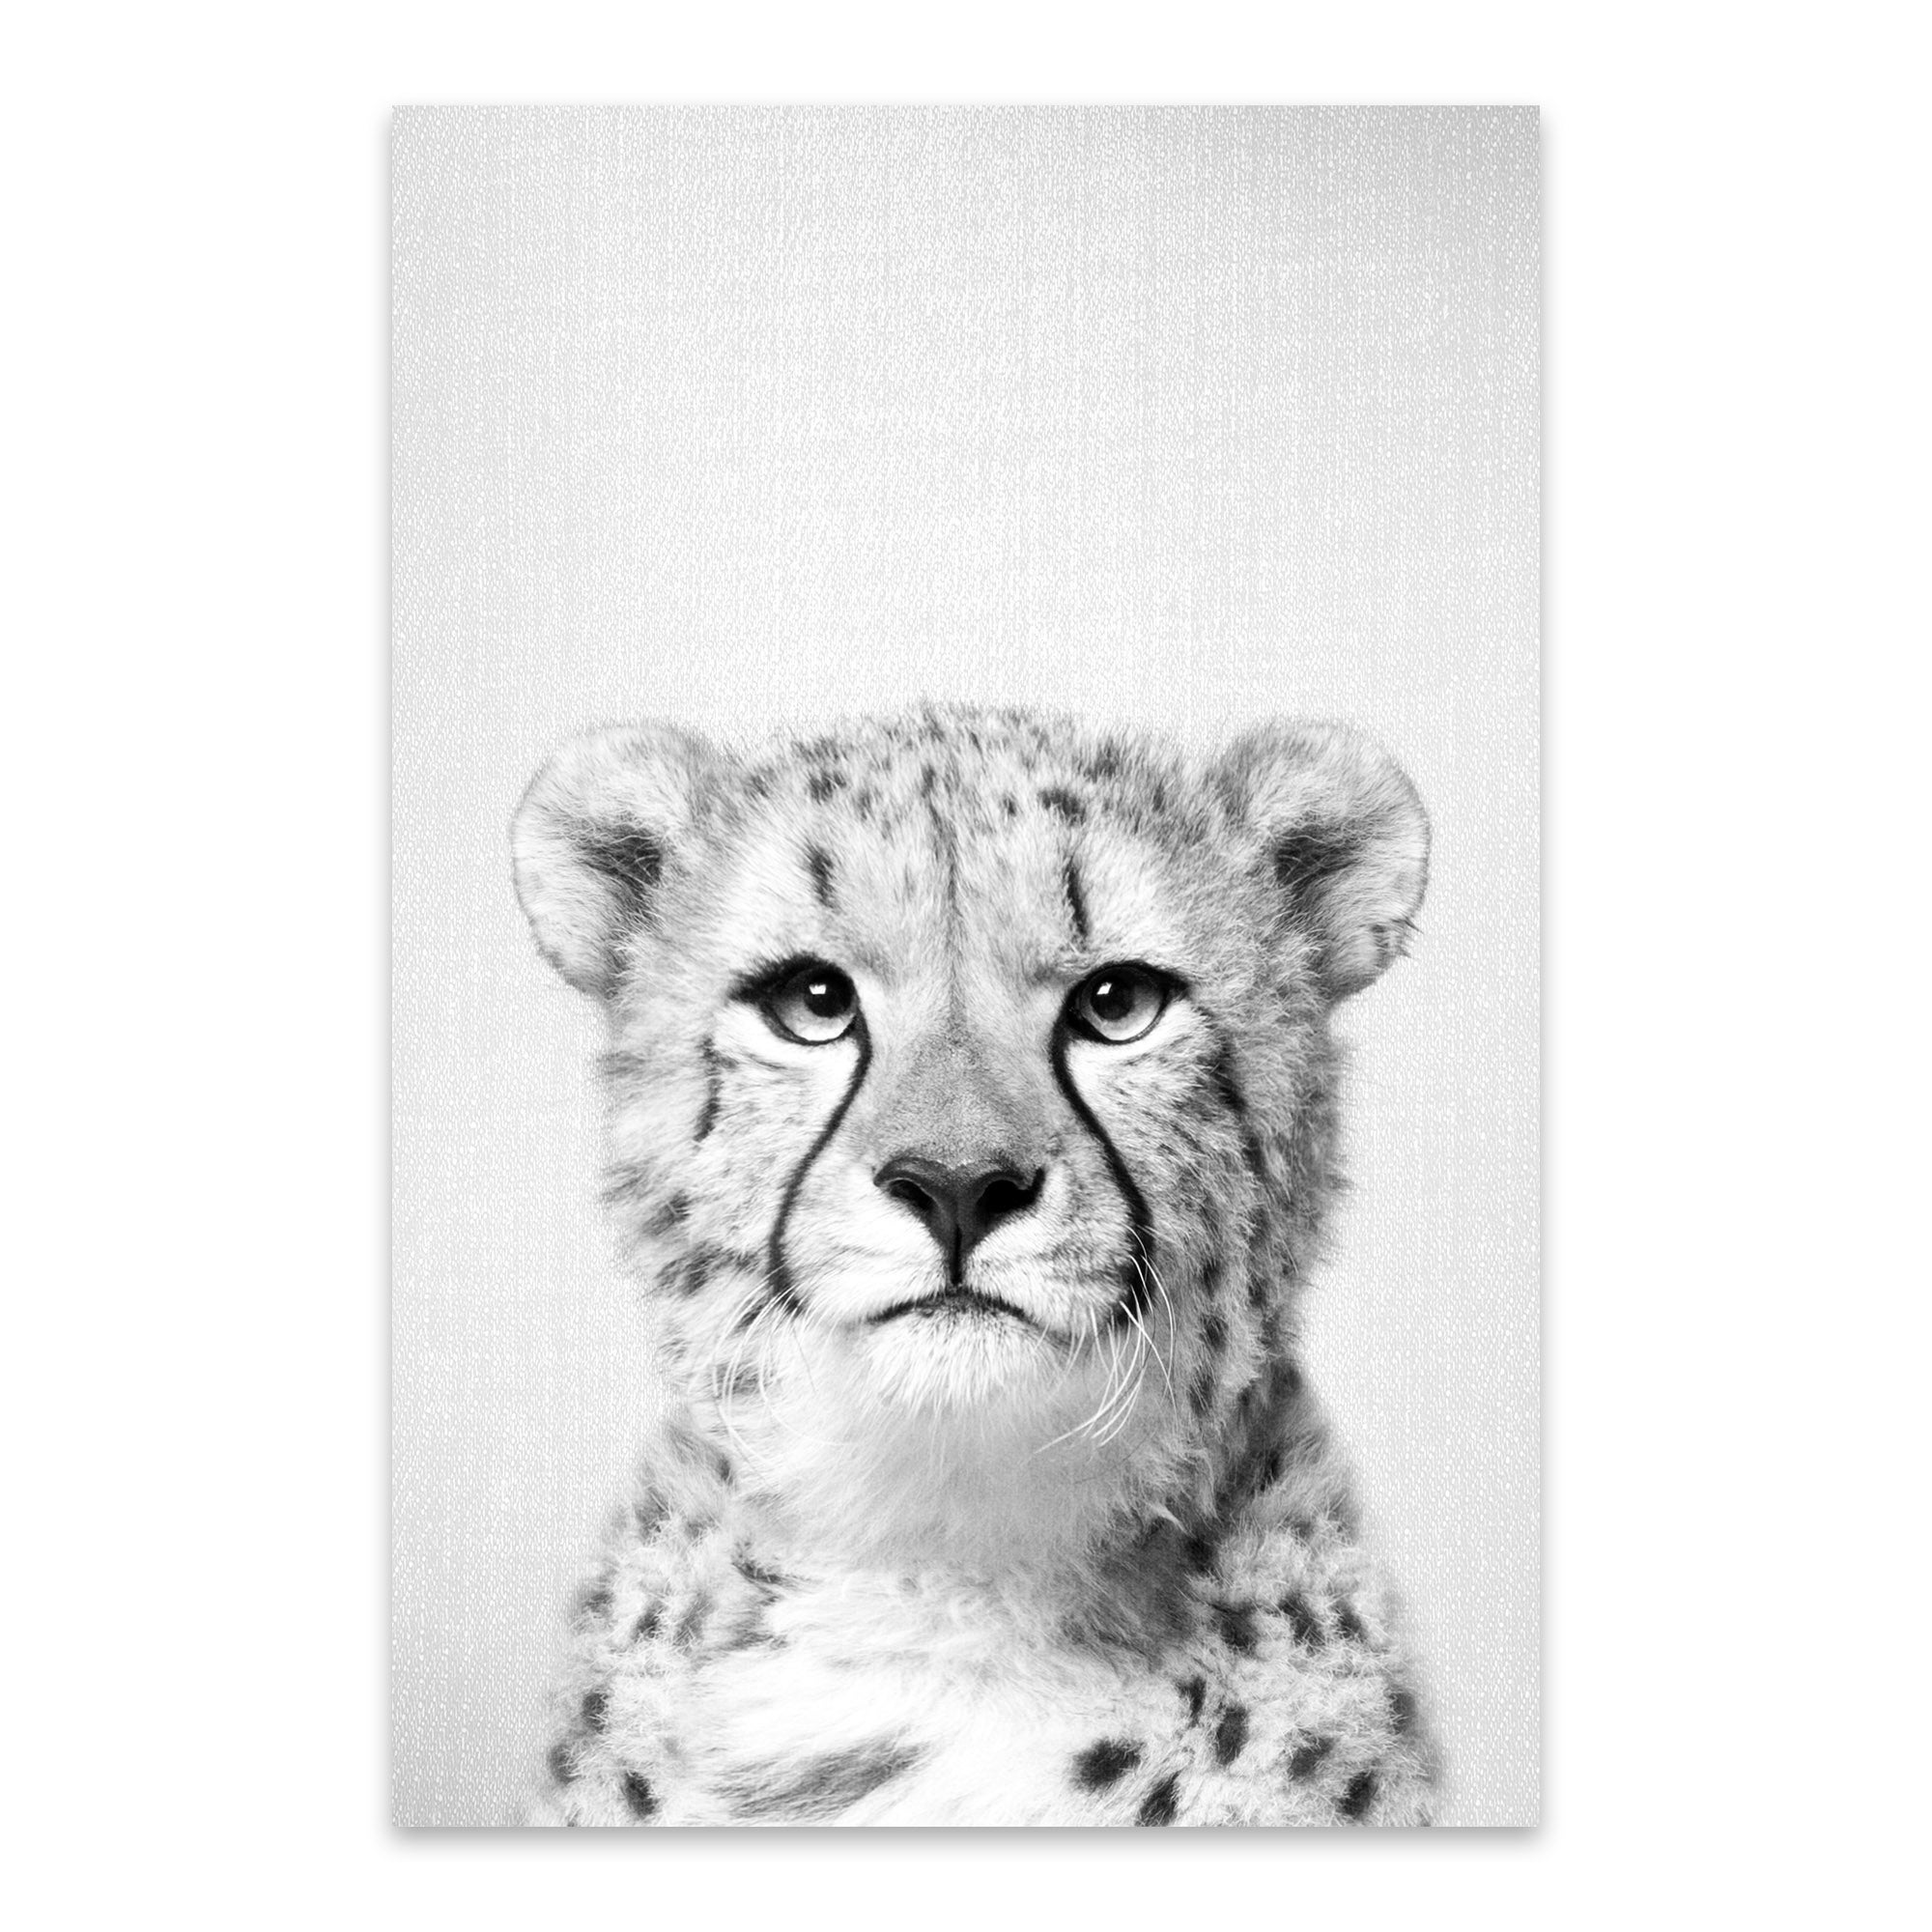 shop noir gallery gal design cheetah black and white african cheetah peekaboo animal metal wall art print overstock 27560615 noir gallery gal design cheetah black and white african cheetah peekaboo animal metal wall art print